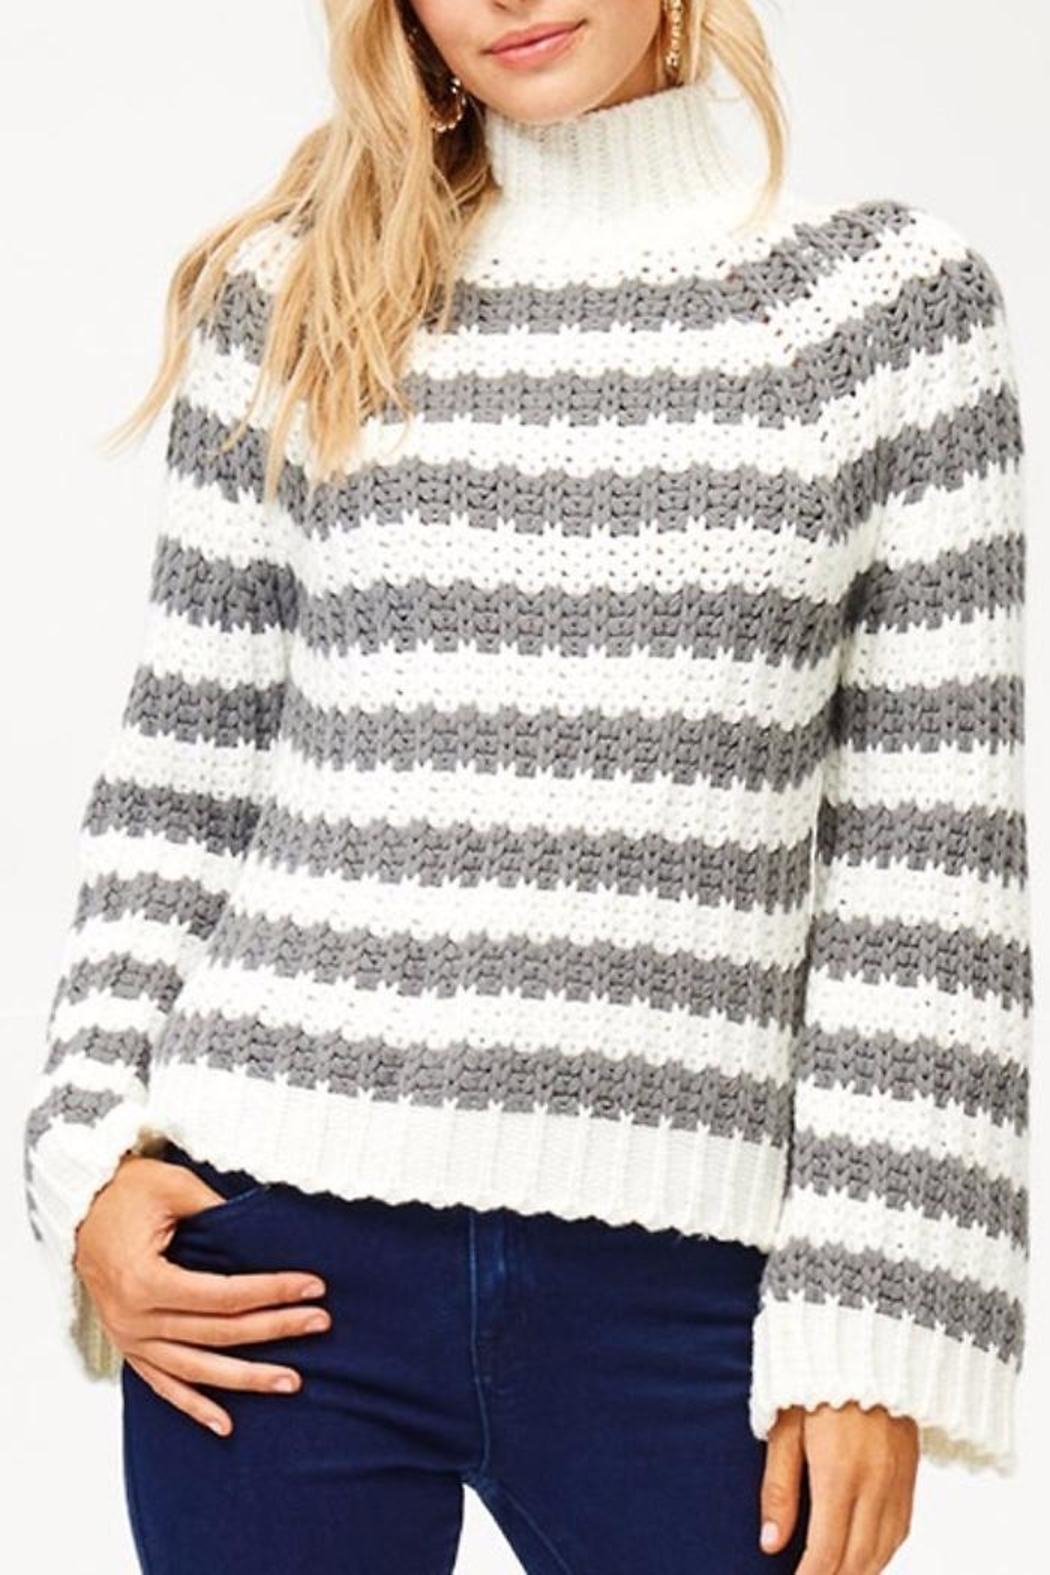 People Outfitter Wild Cat Sweater - Main Image